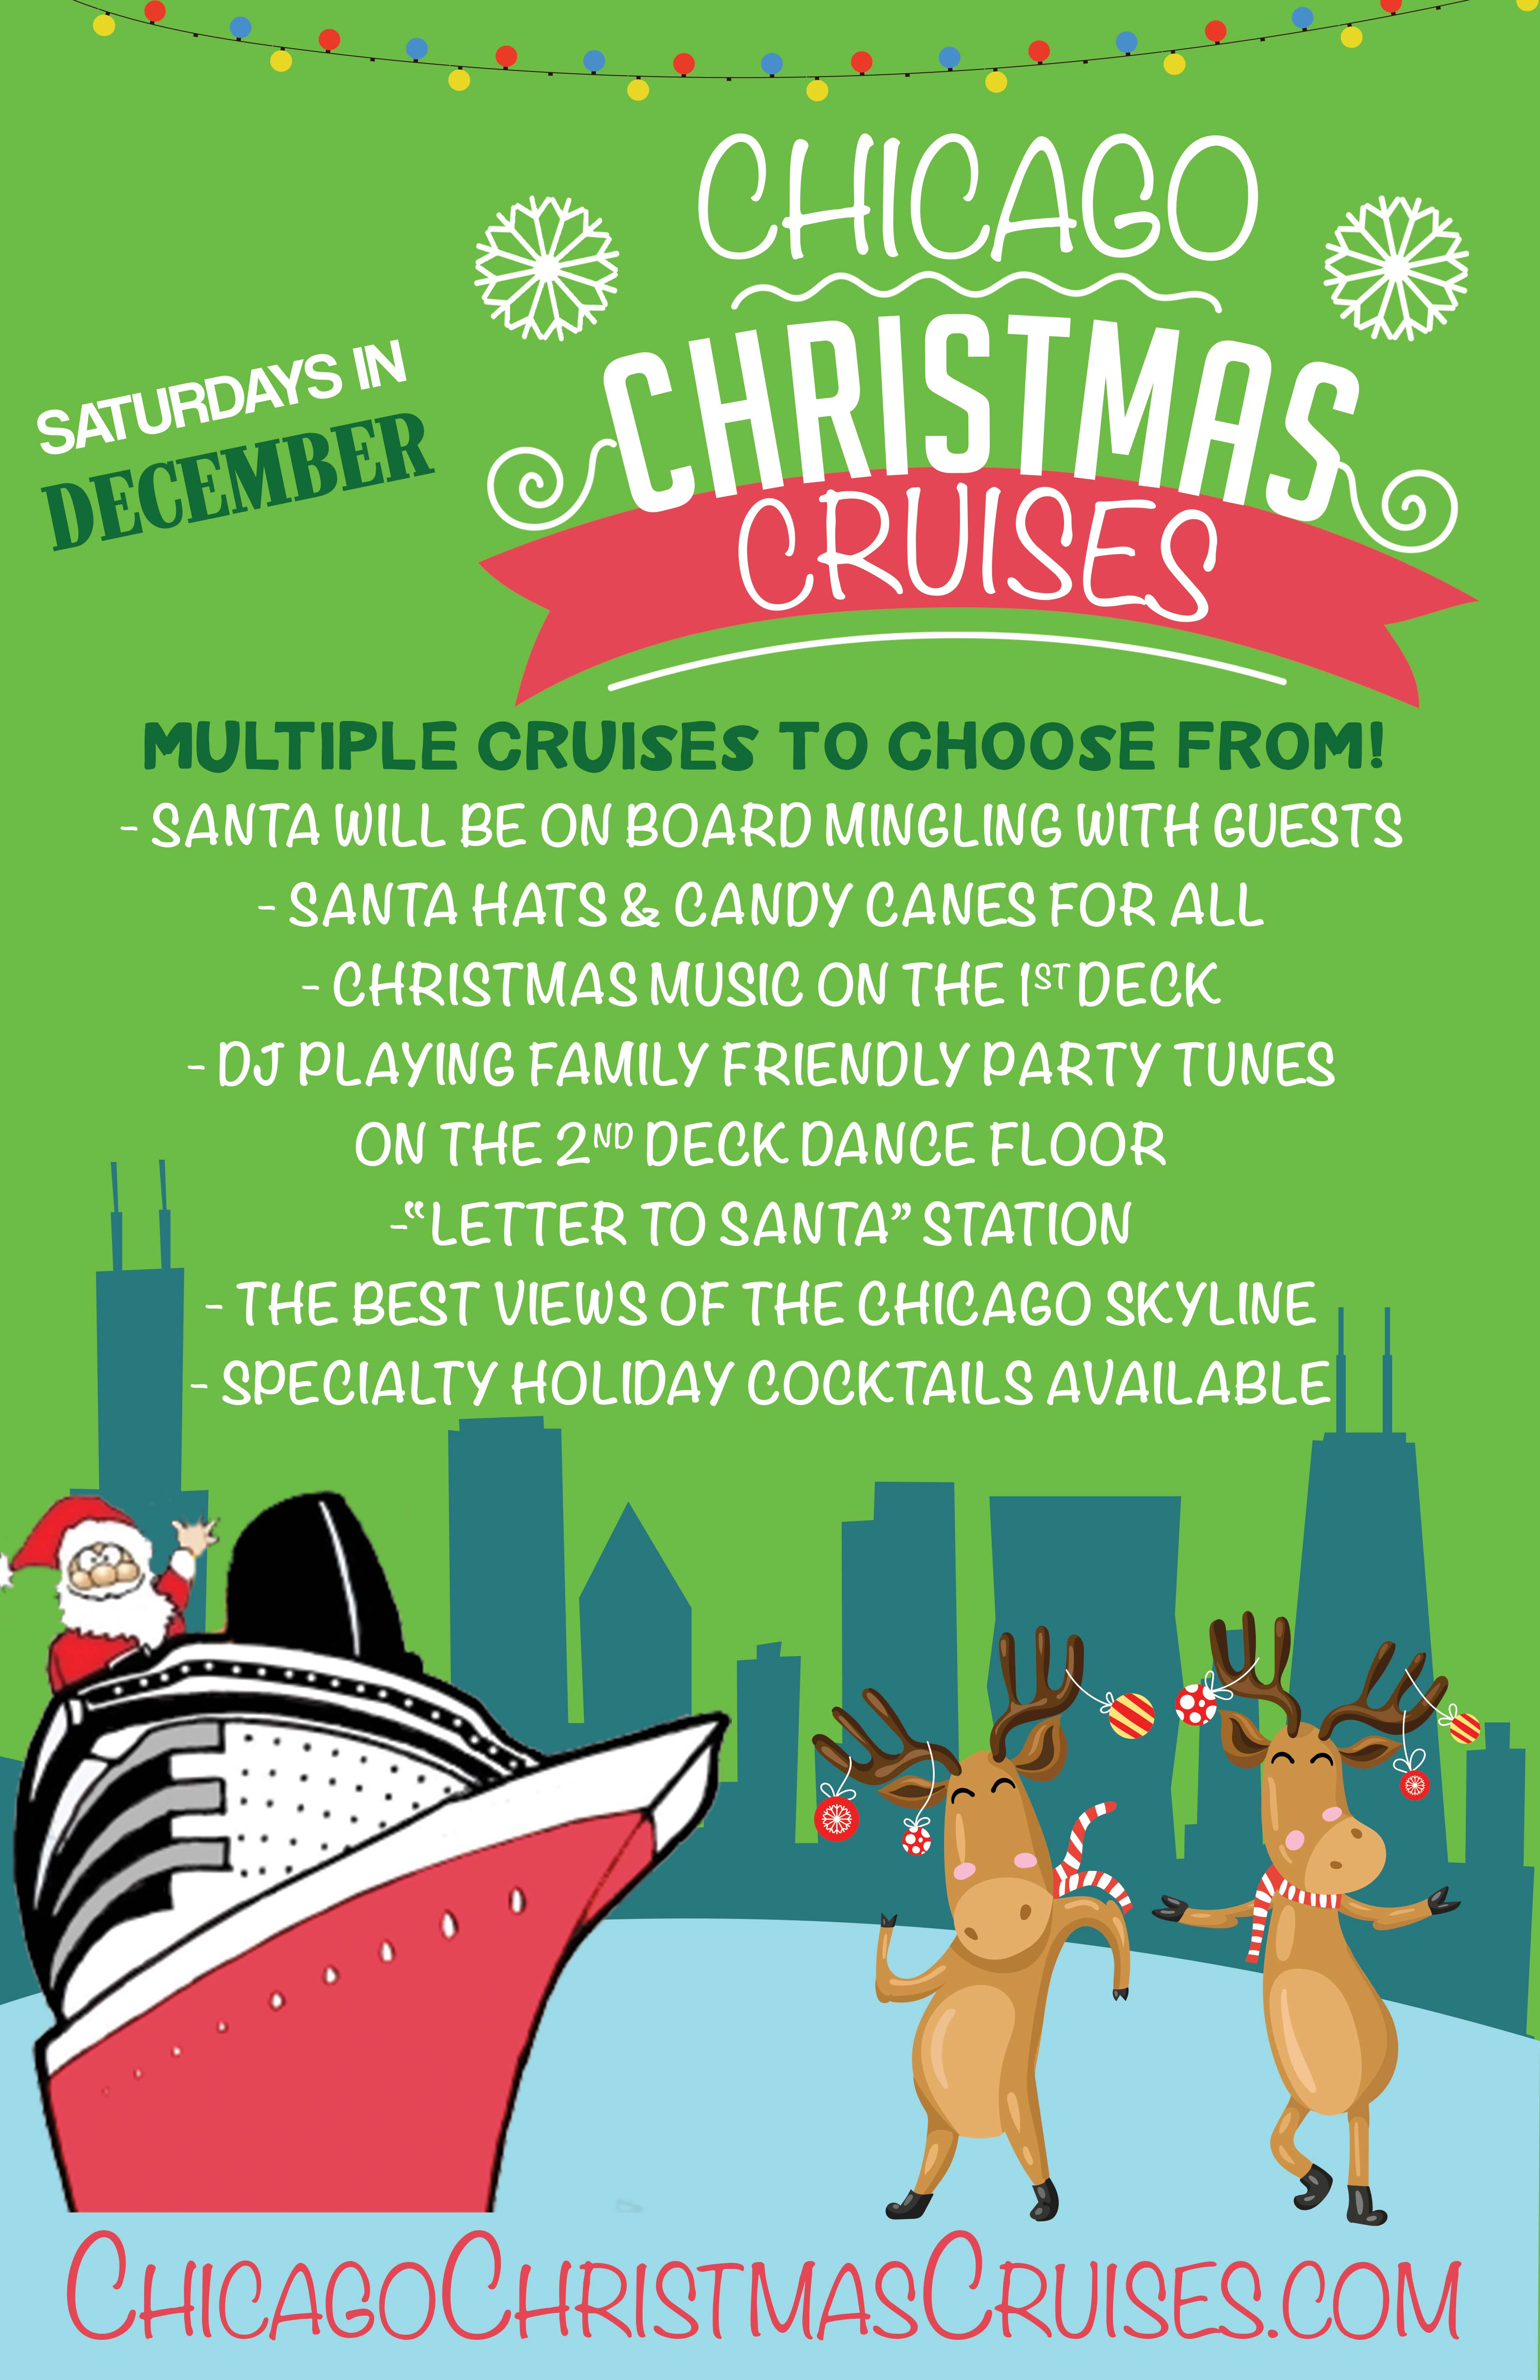 Chicago Christmas Cruise Party - Get into the holiday spirit aboard our three story luxury yacht for the Chicago Christmas Cruise on Lake Michigan!